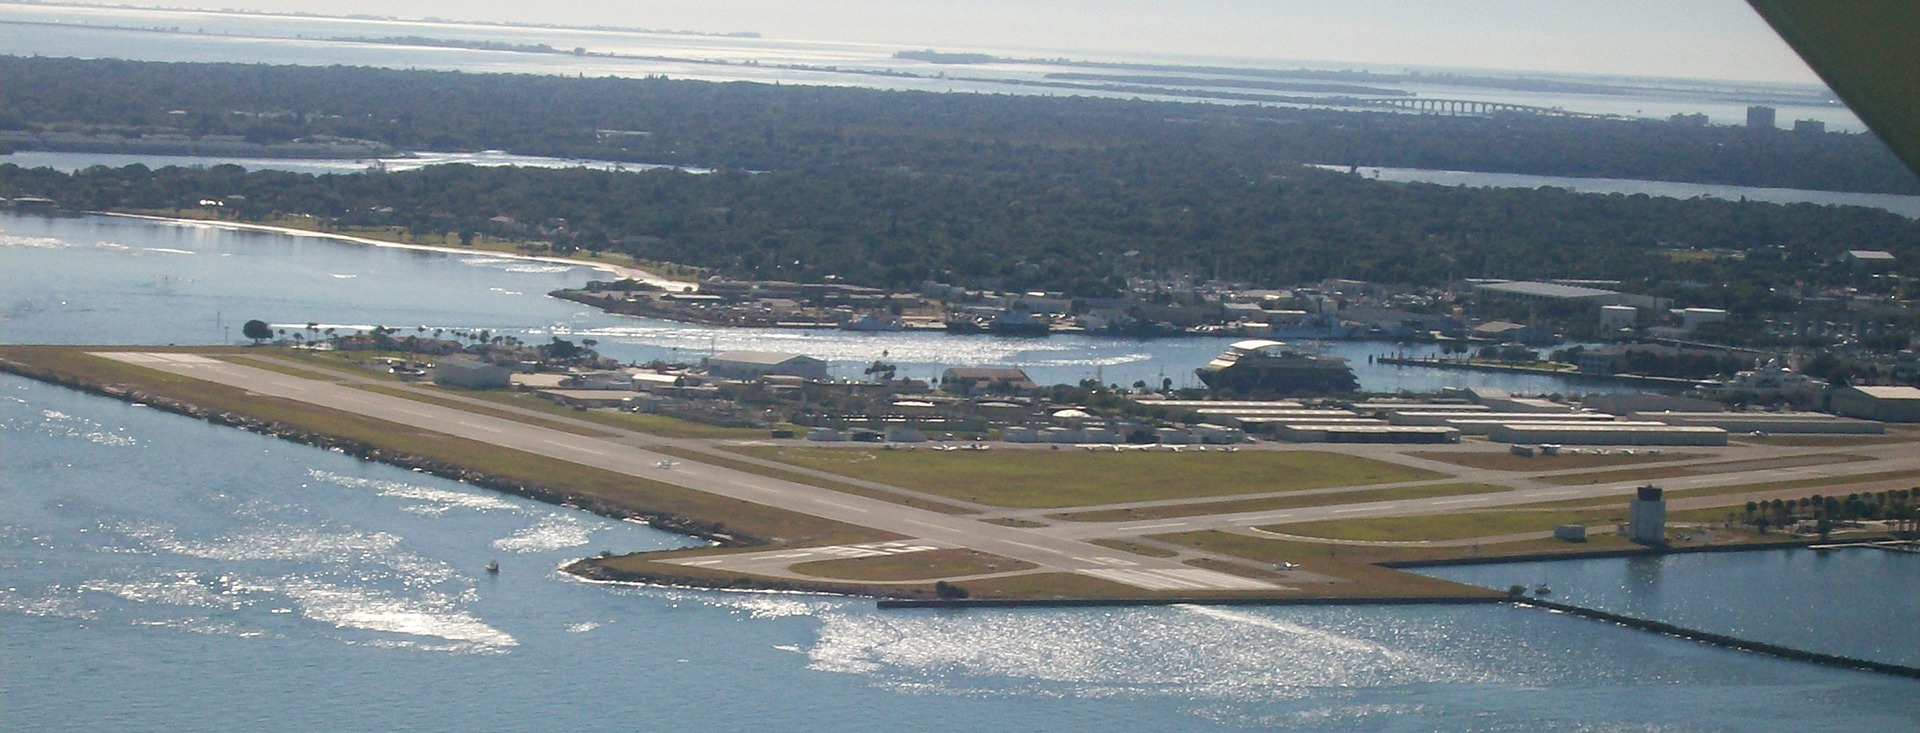 Aerial_Photo_-_Albert_Whitted_Airport_-_Florida_USA (1)